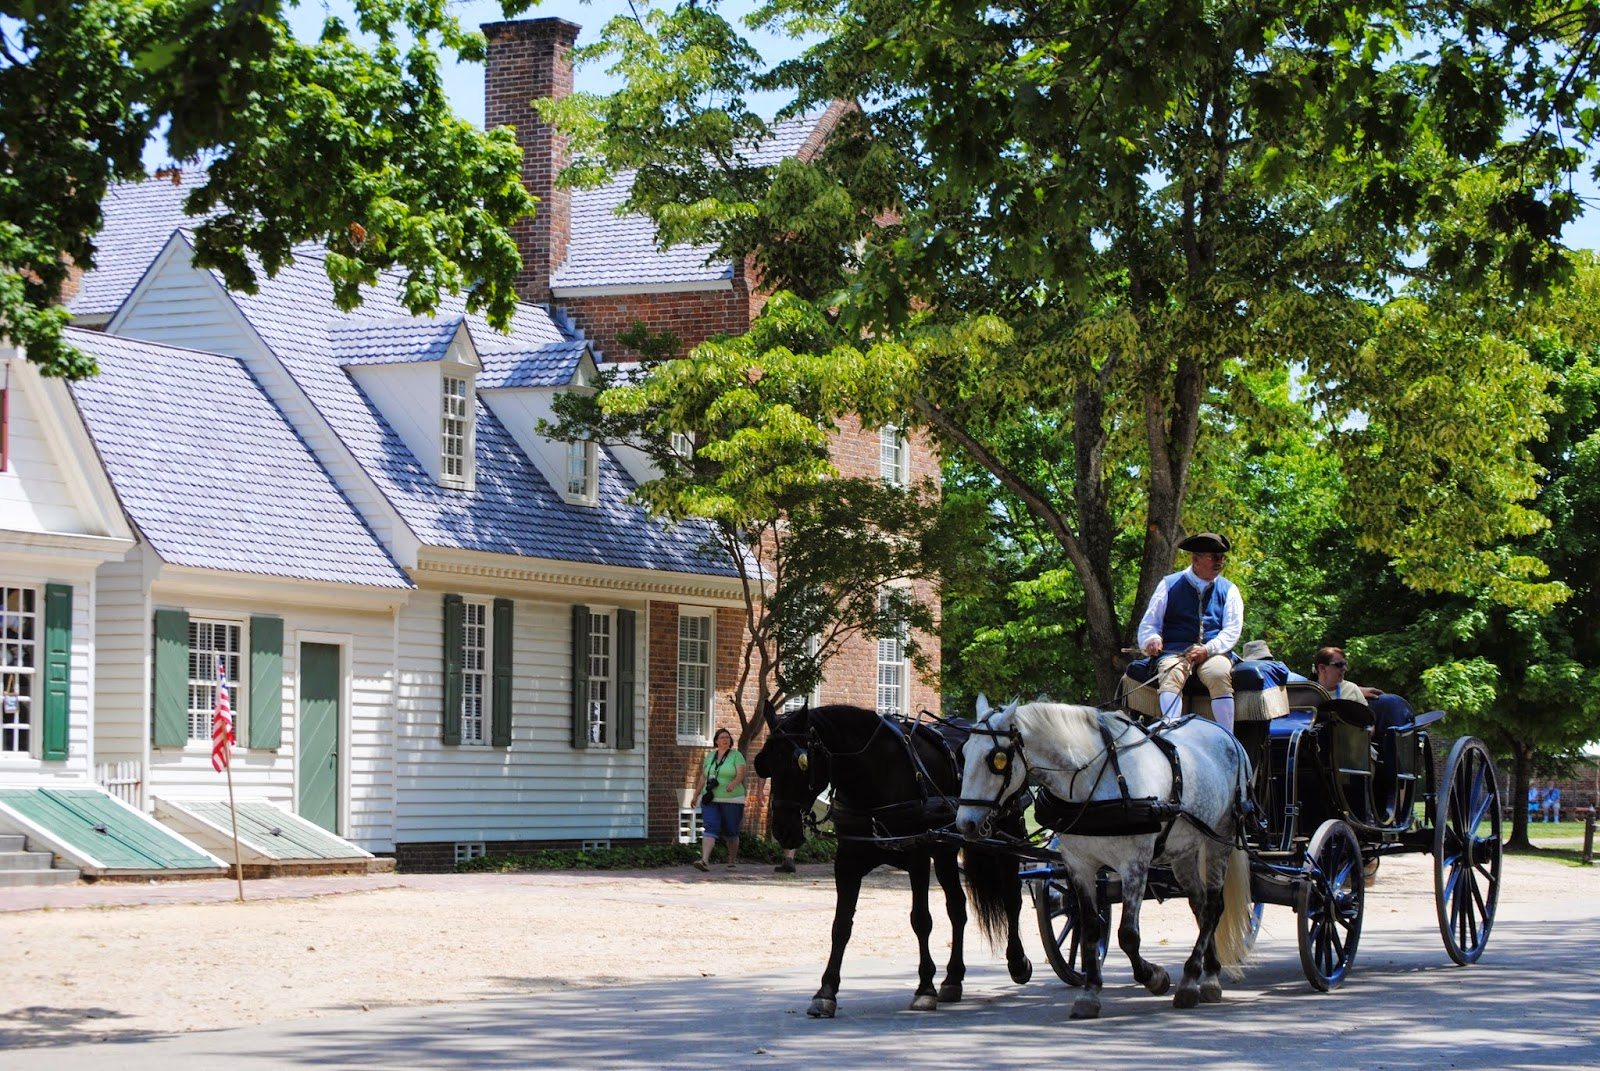 Our Adventures Colonial Williamsburg Jamestown